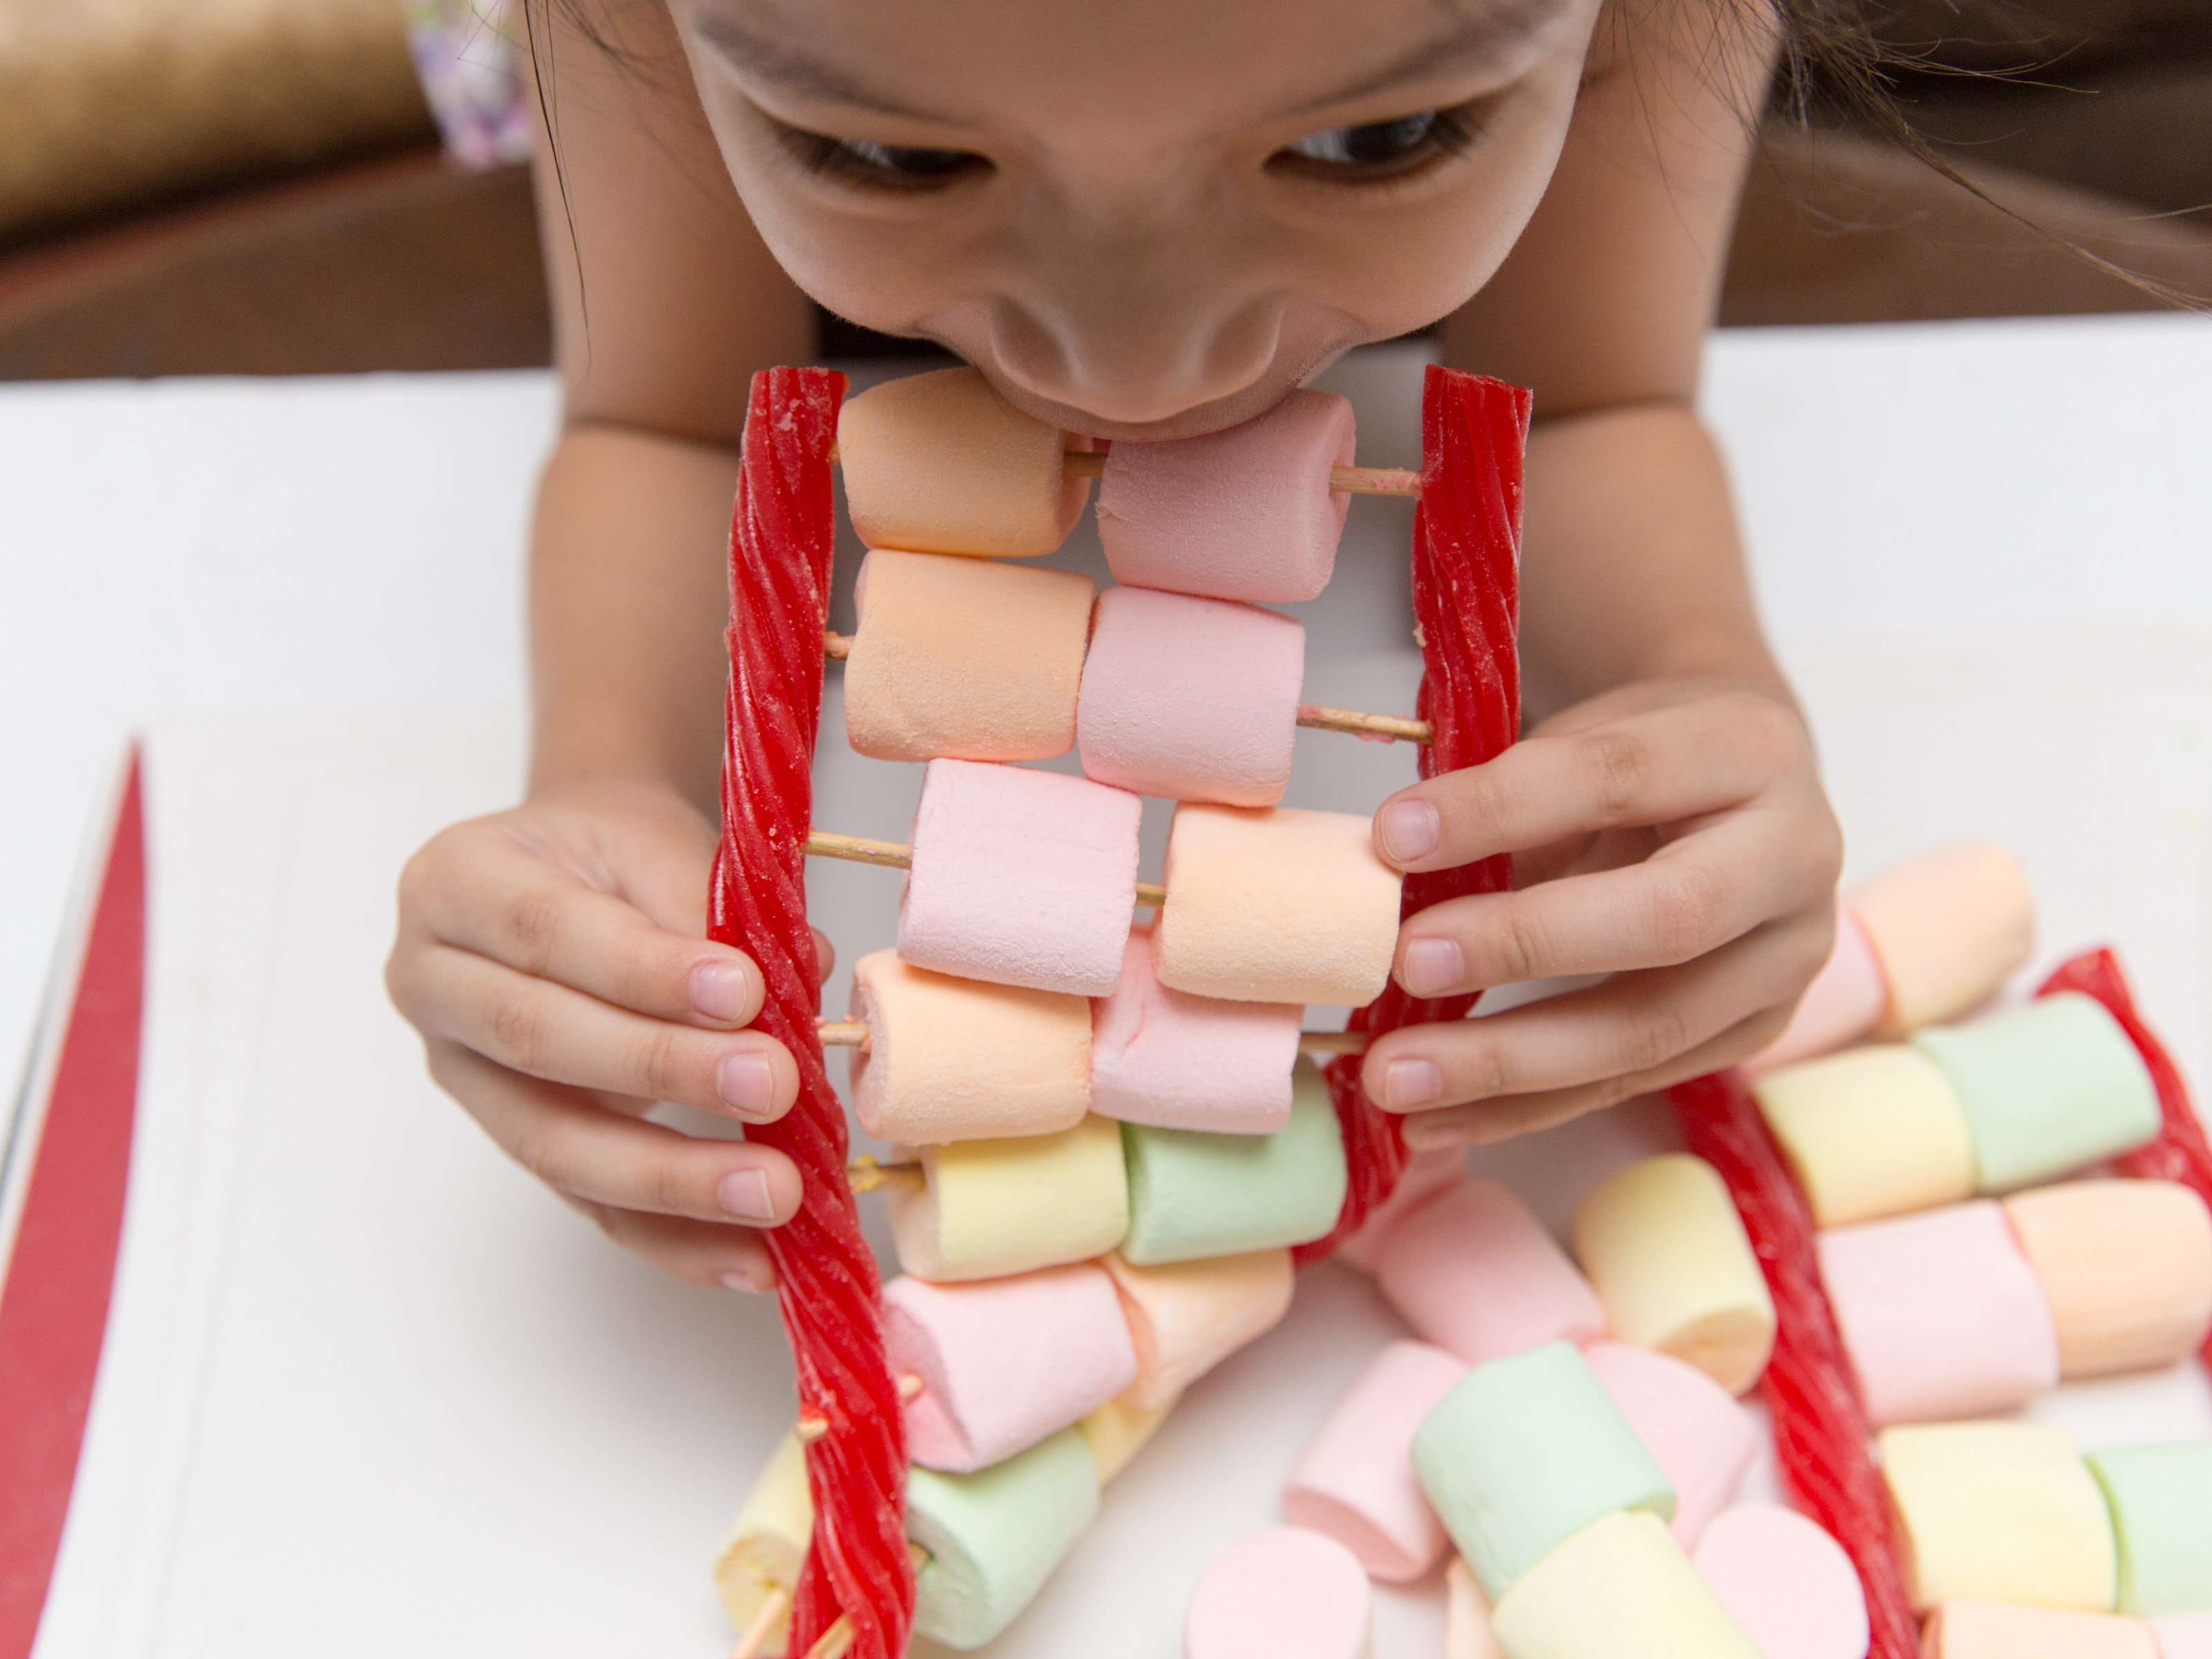 How To Make An Edible Dna Model 10 Steps With Pictures